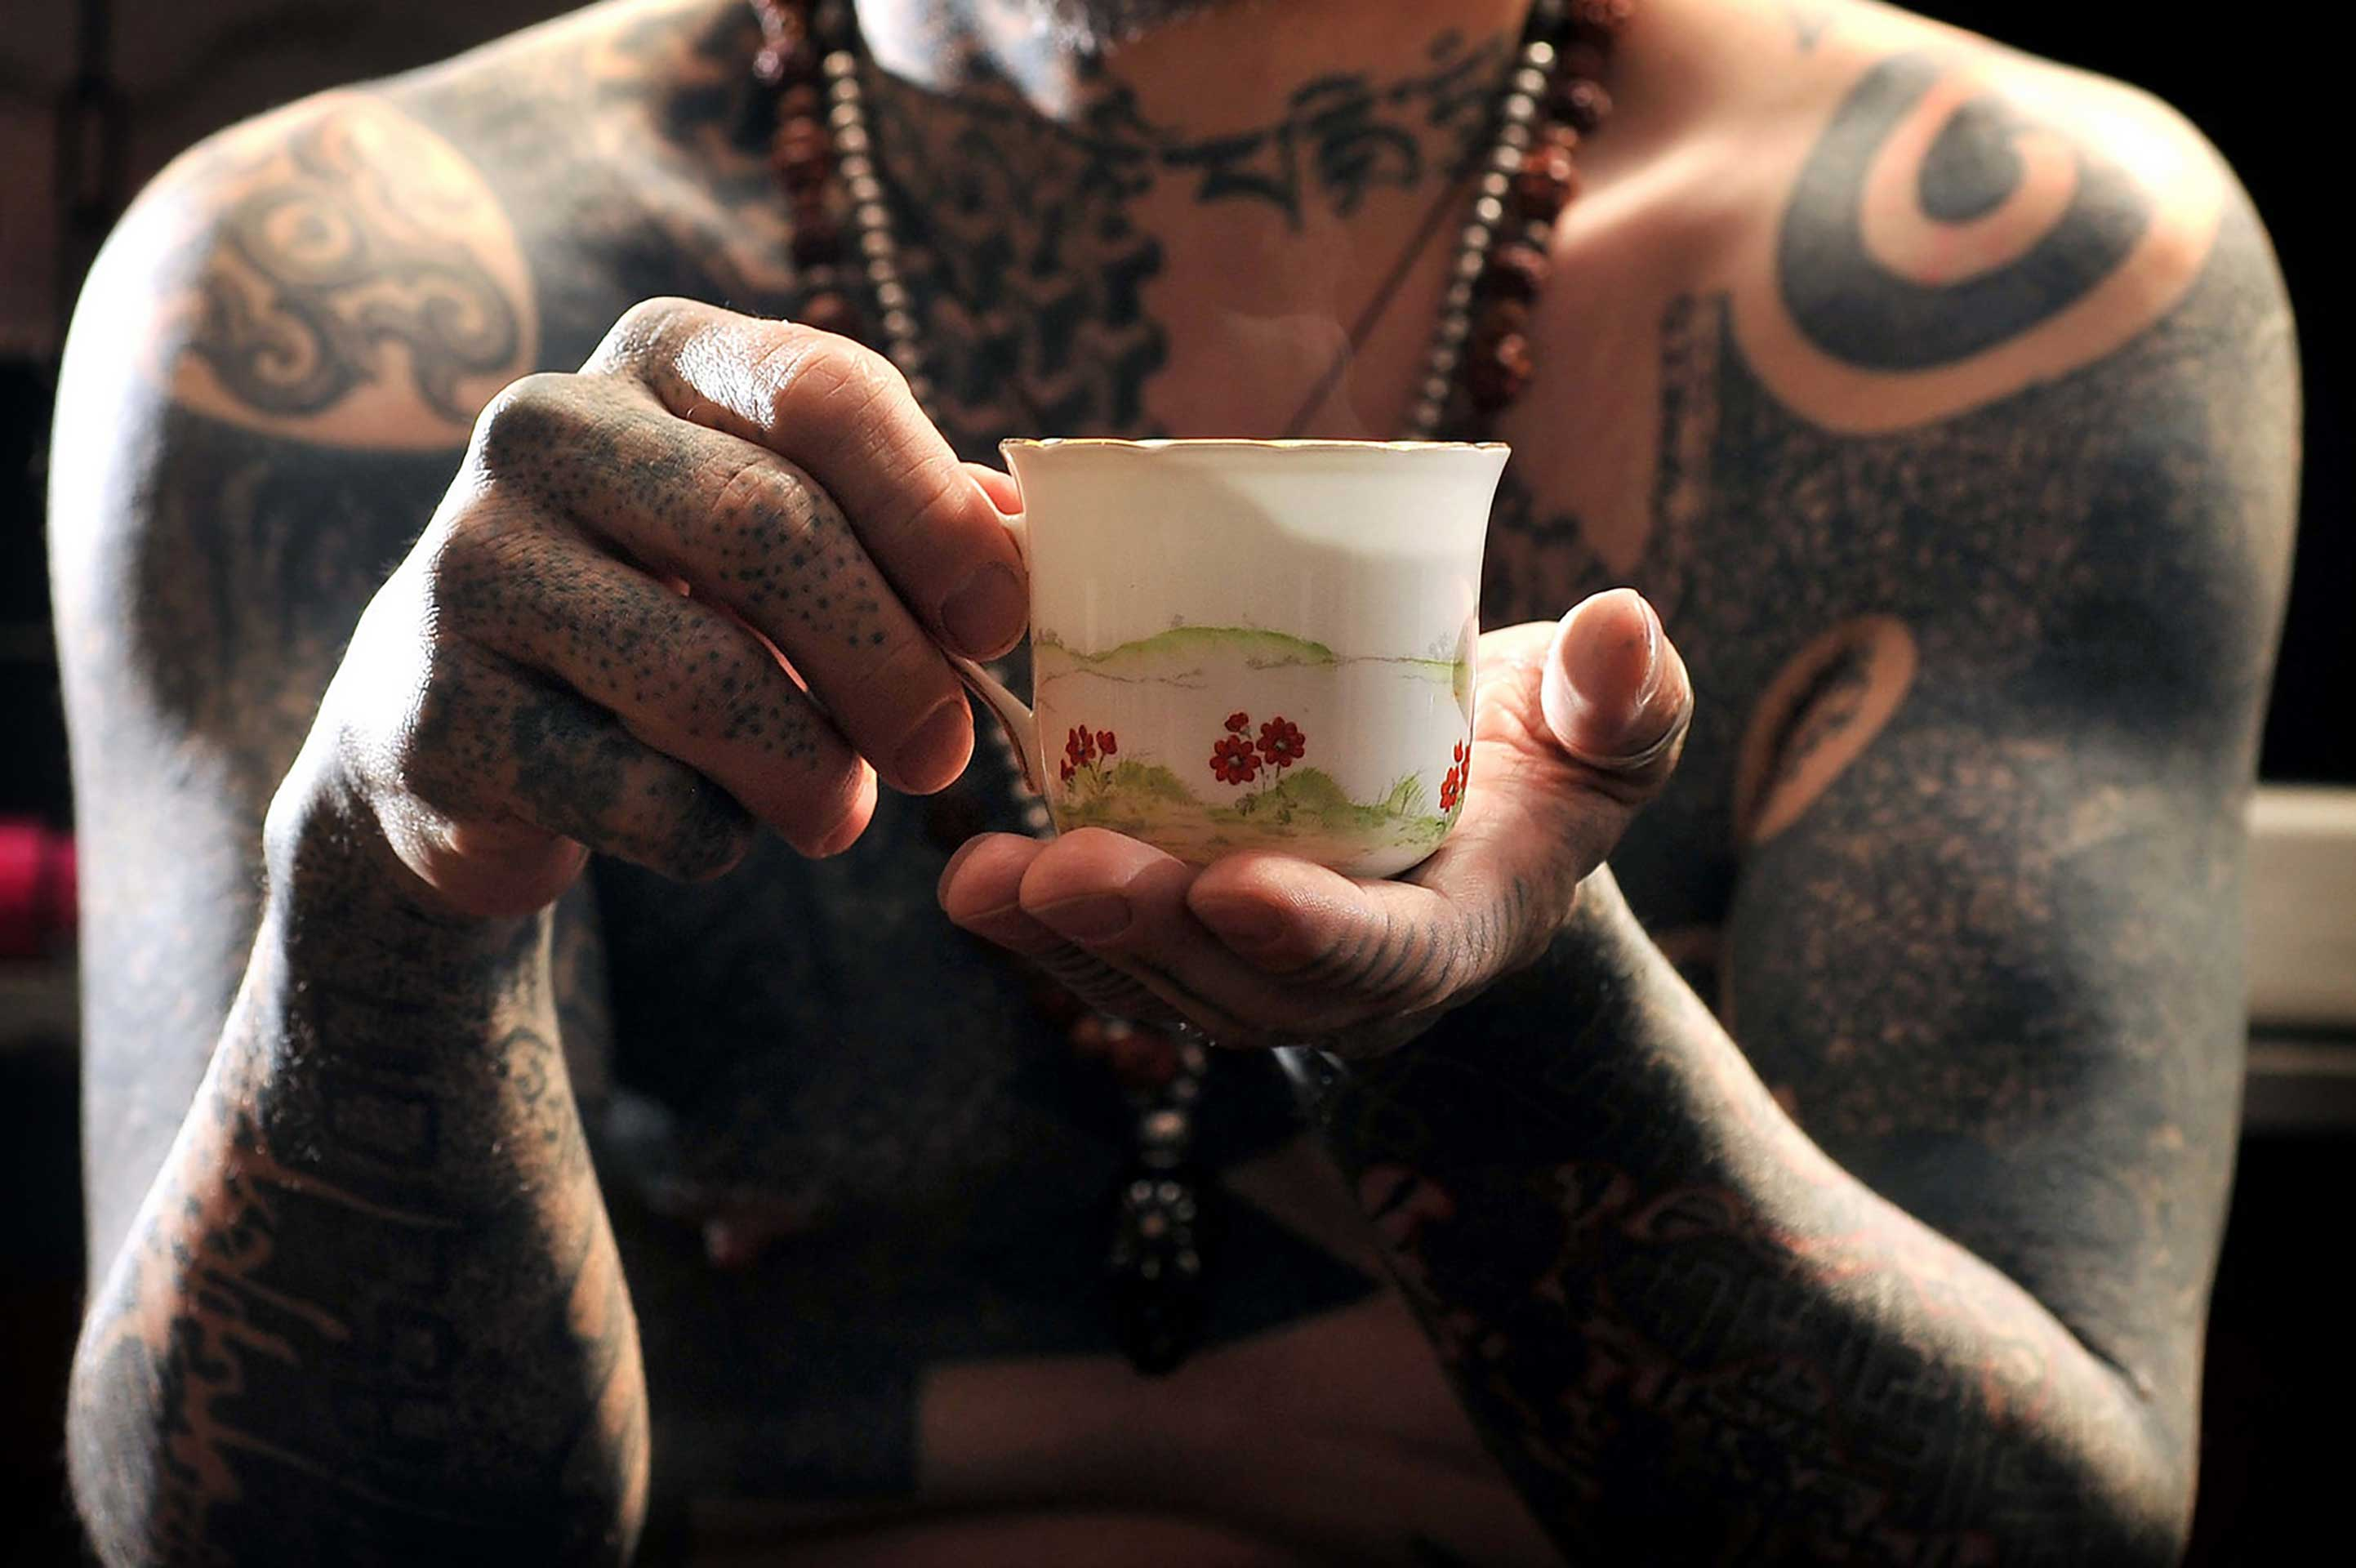 Daniel Lynch The Tea Lady The Tattoist Calm Photography Movement